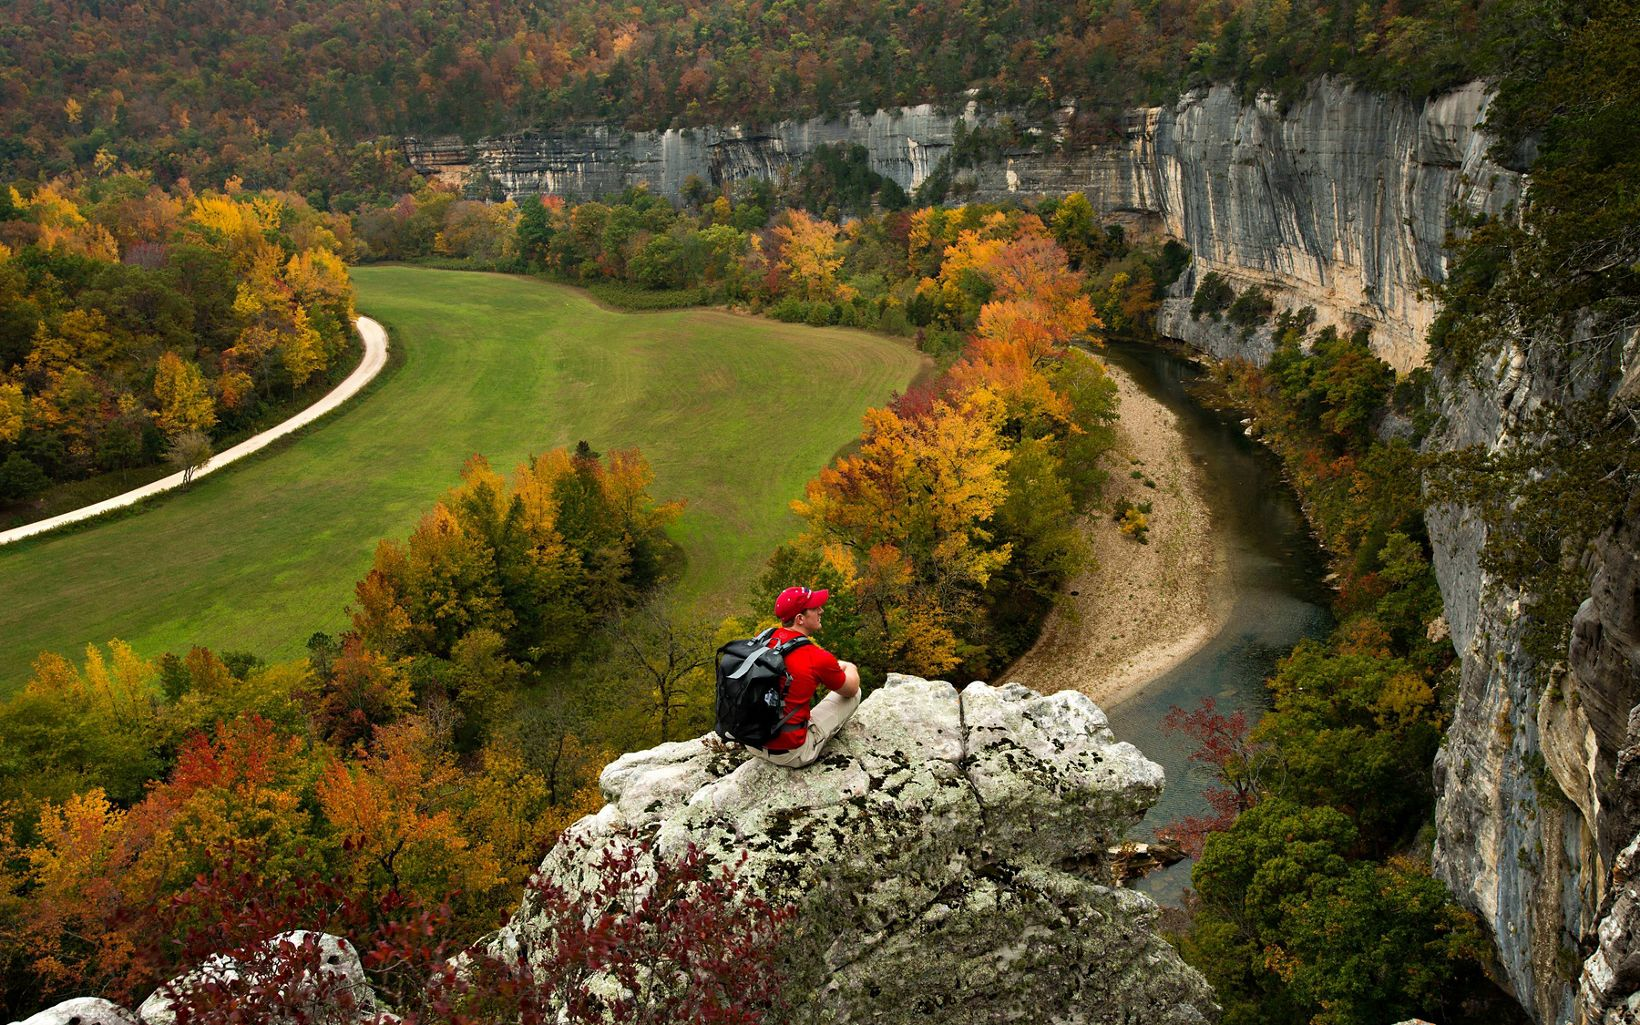 Hikers can overlook the Buffalo River at Roark Bluff and take in the rugged natural beauty.